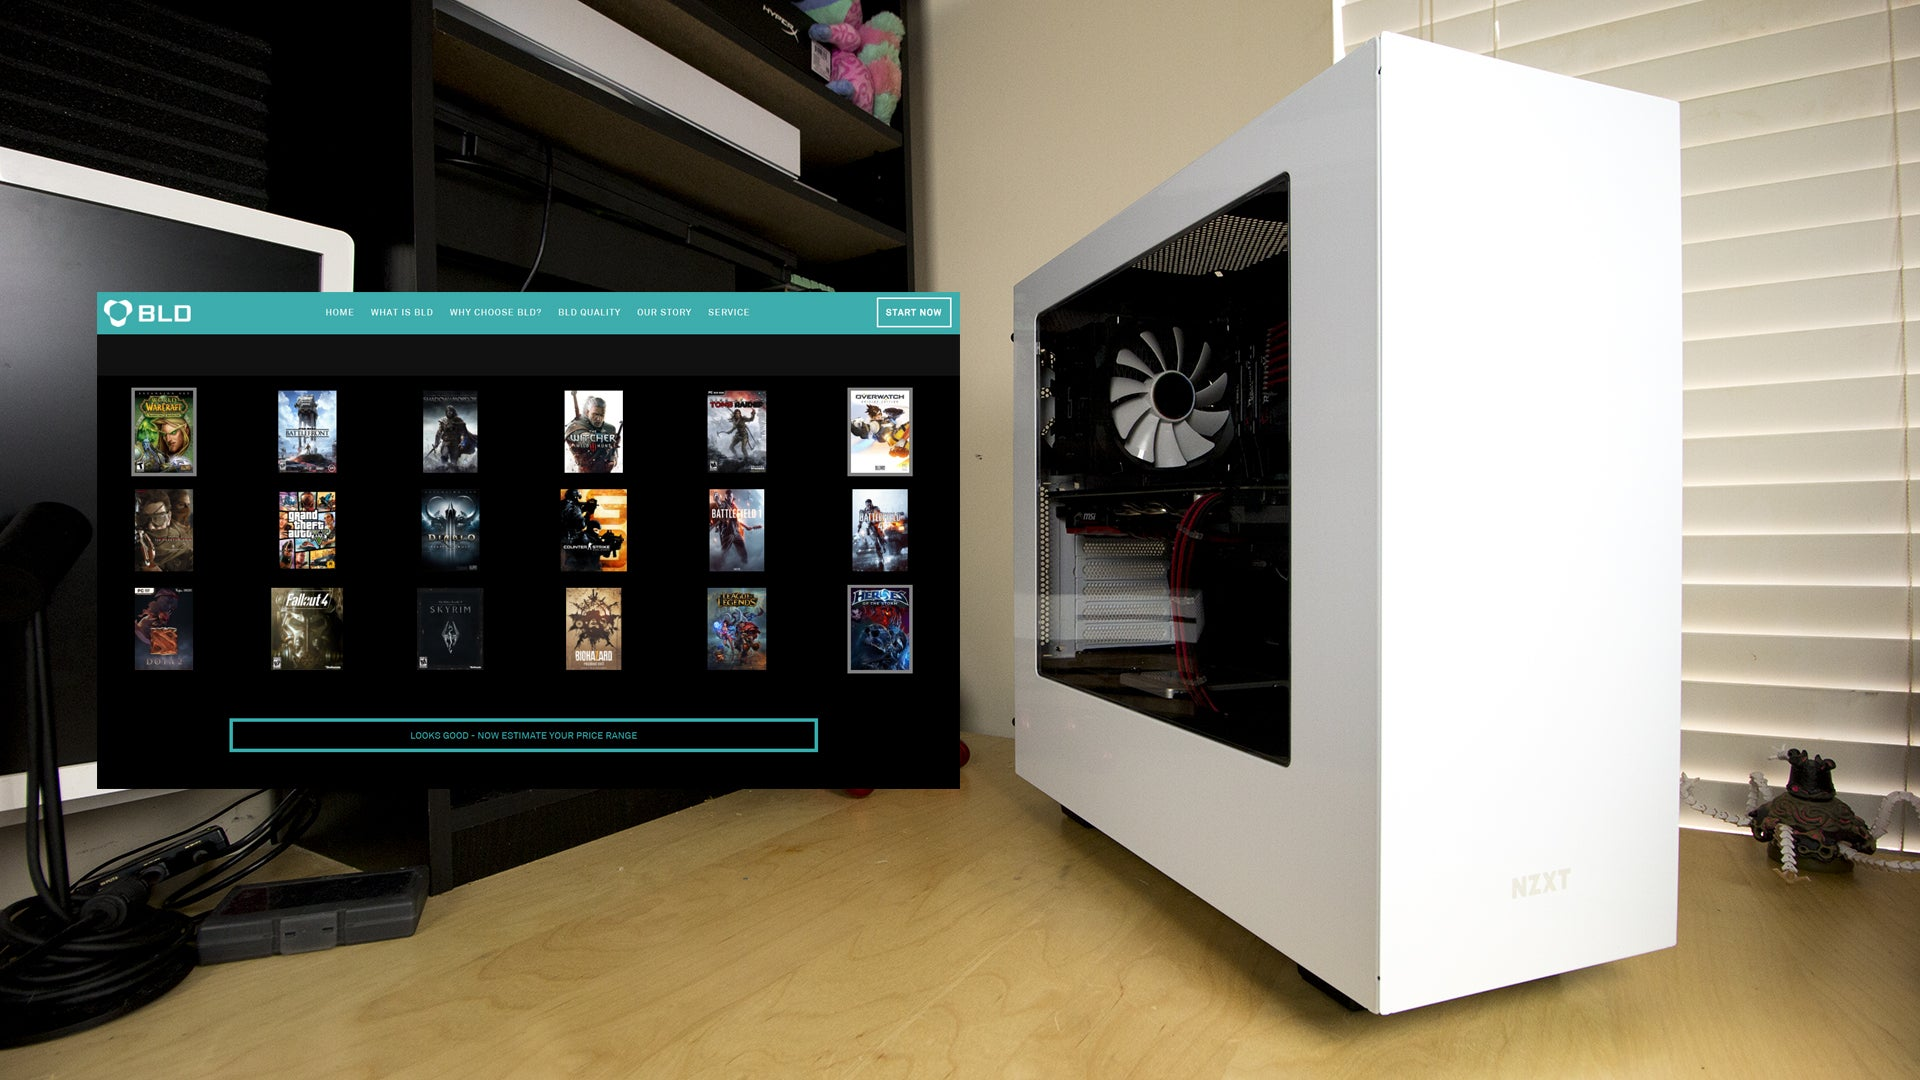 New Service Builds Gaming PCs Based On The Games You Want To Play